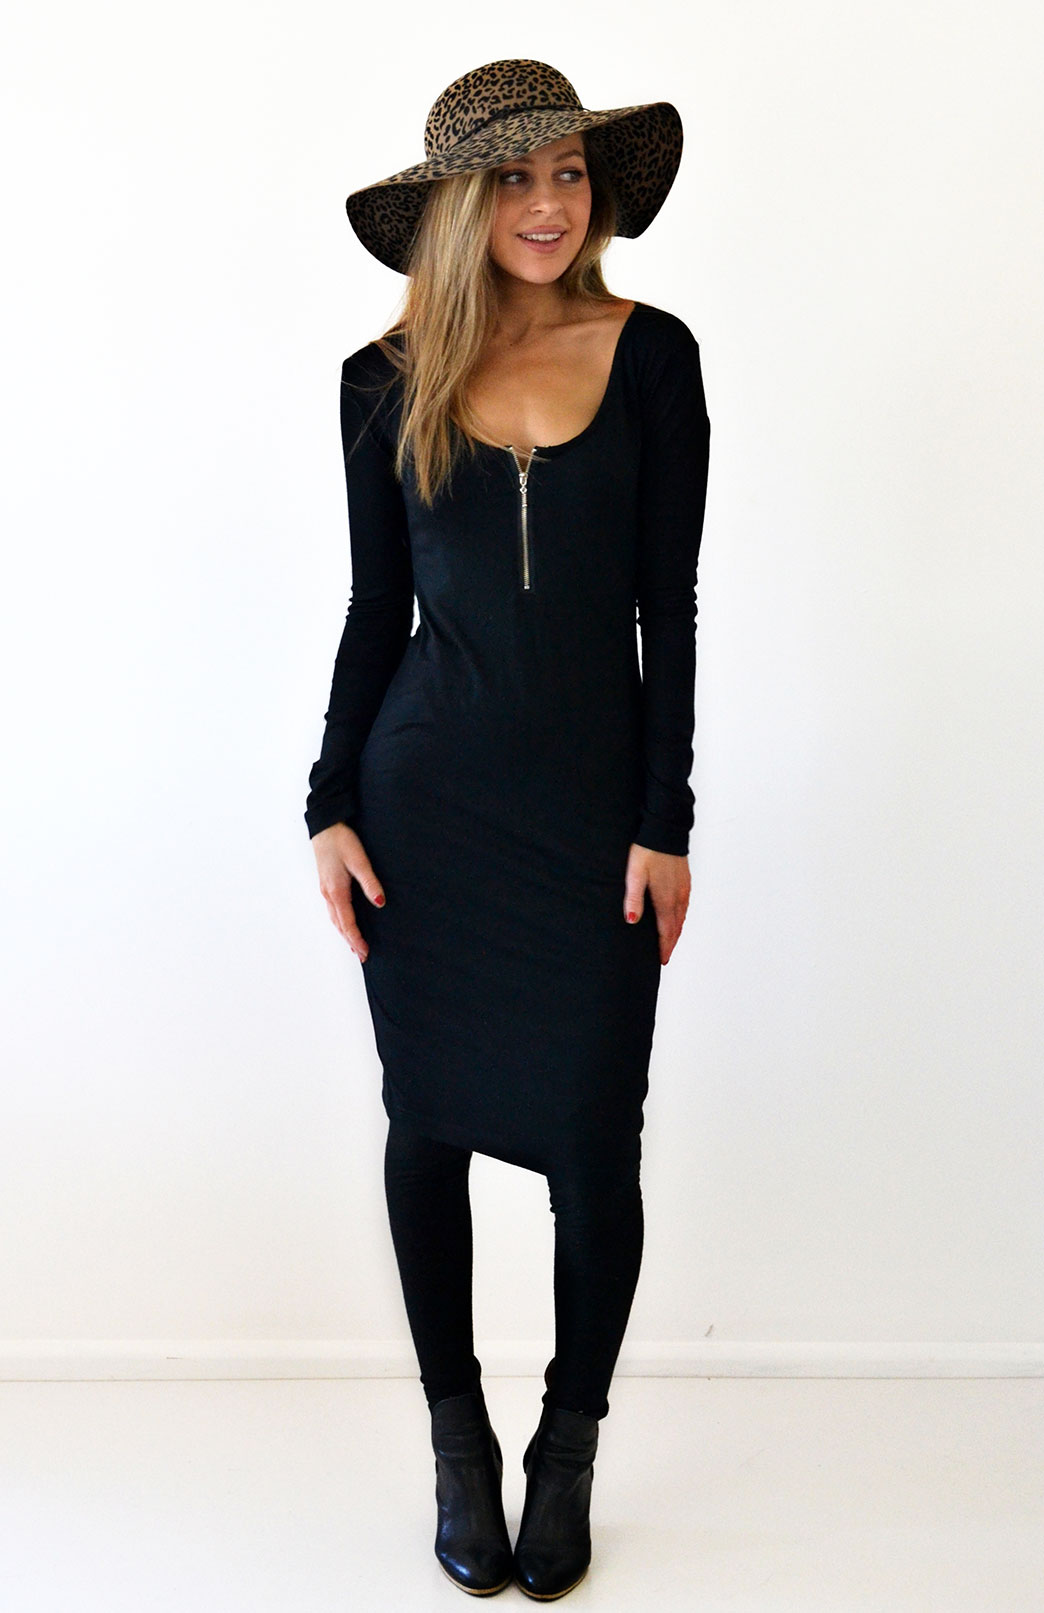 Scoop Neck Zip Dress - Smitten Merino Tasmania Australia